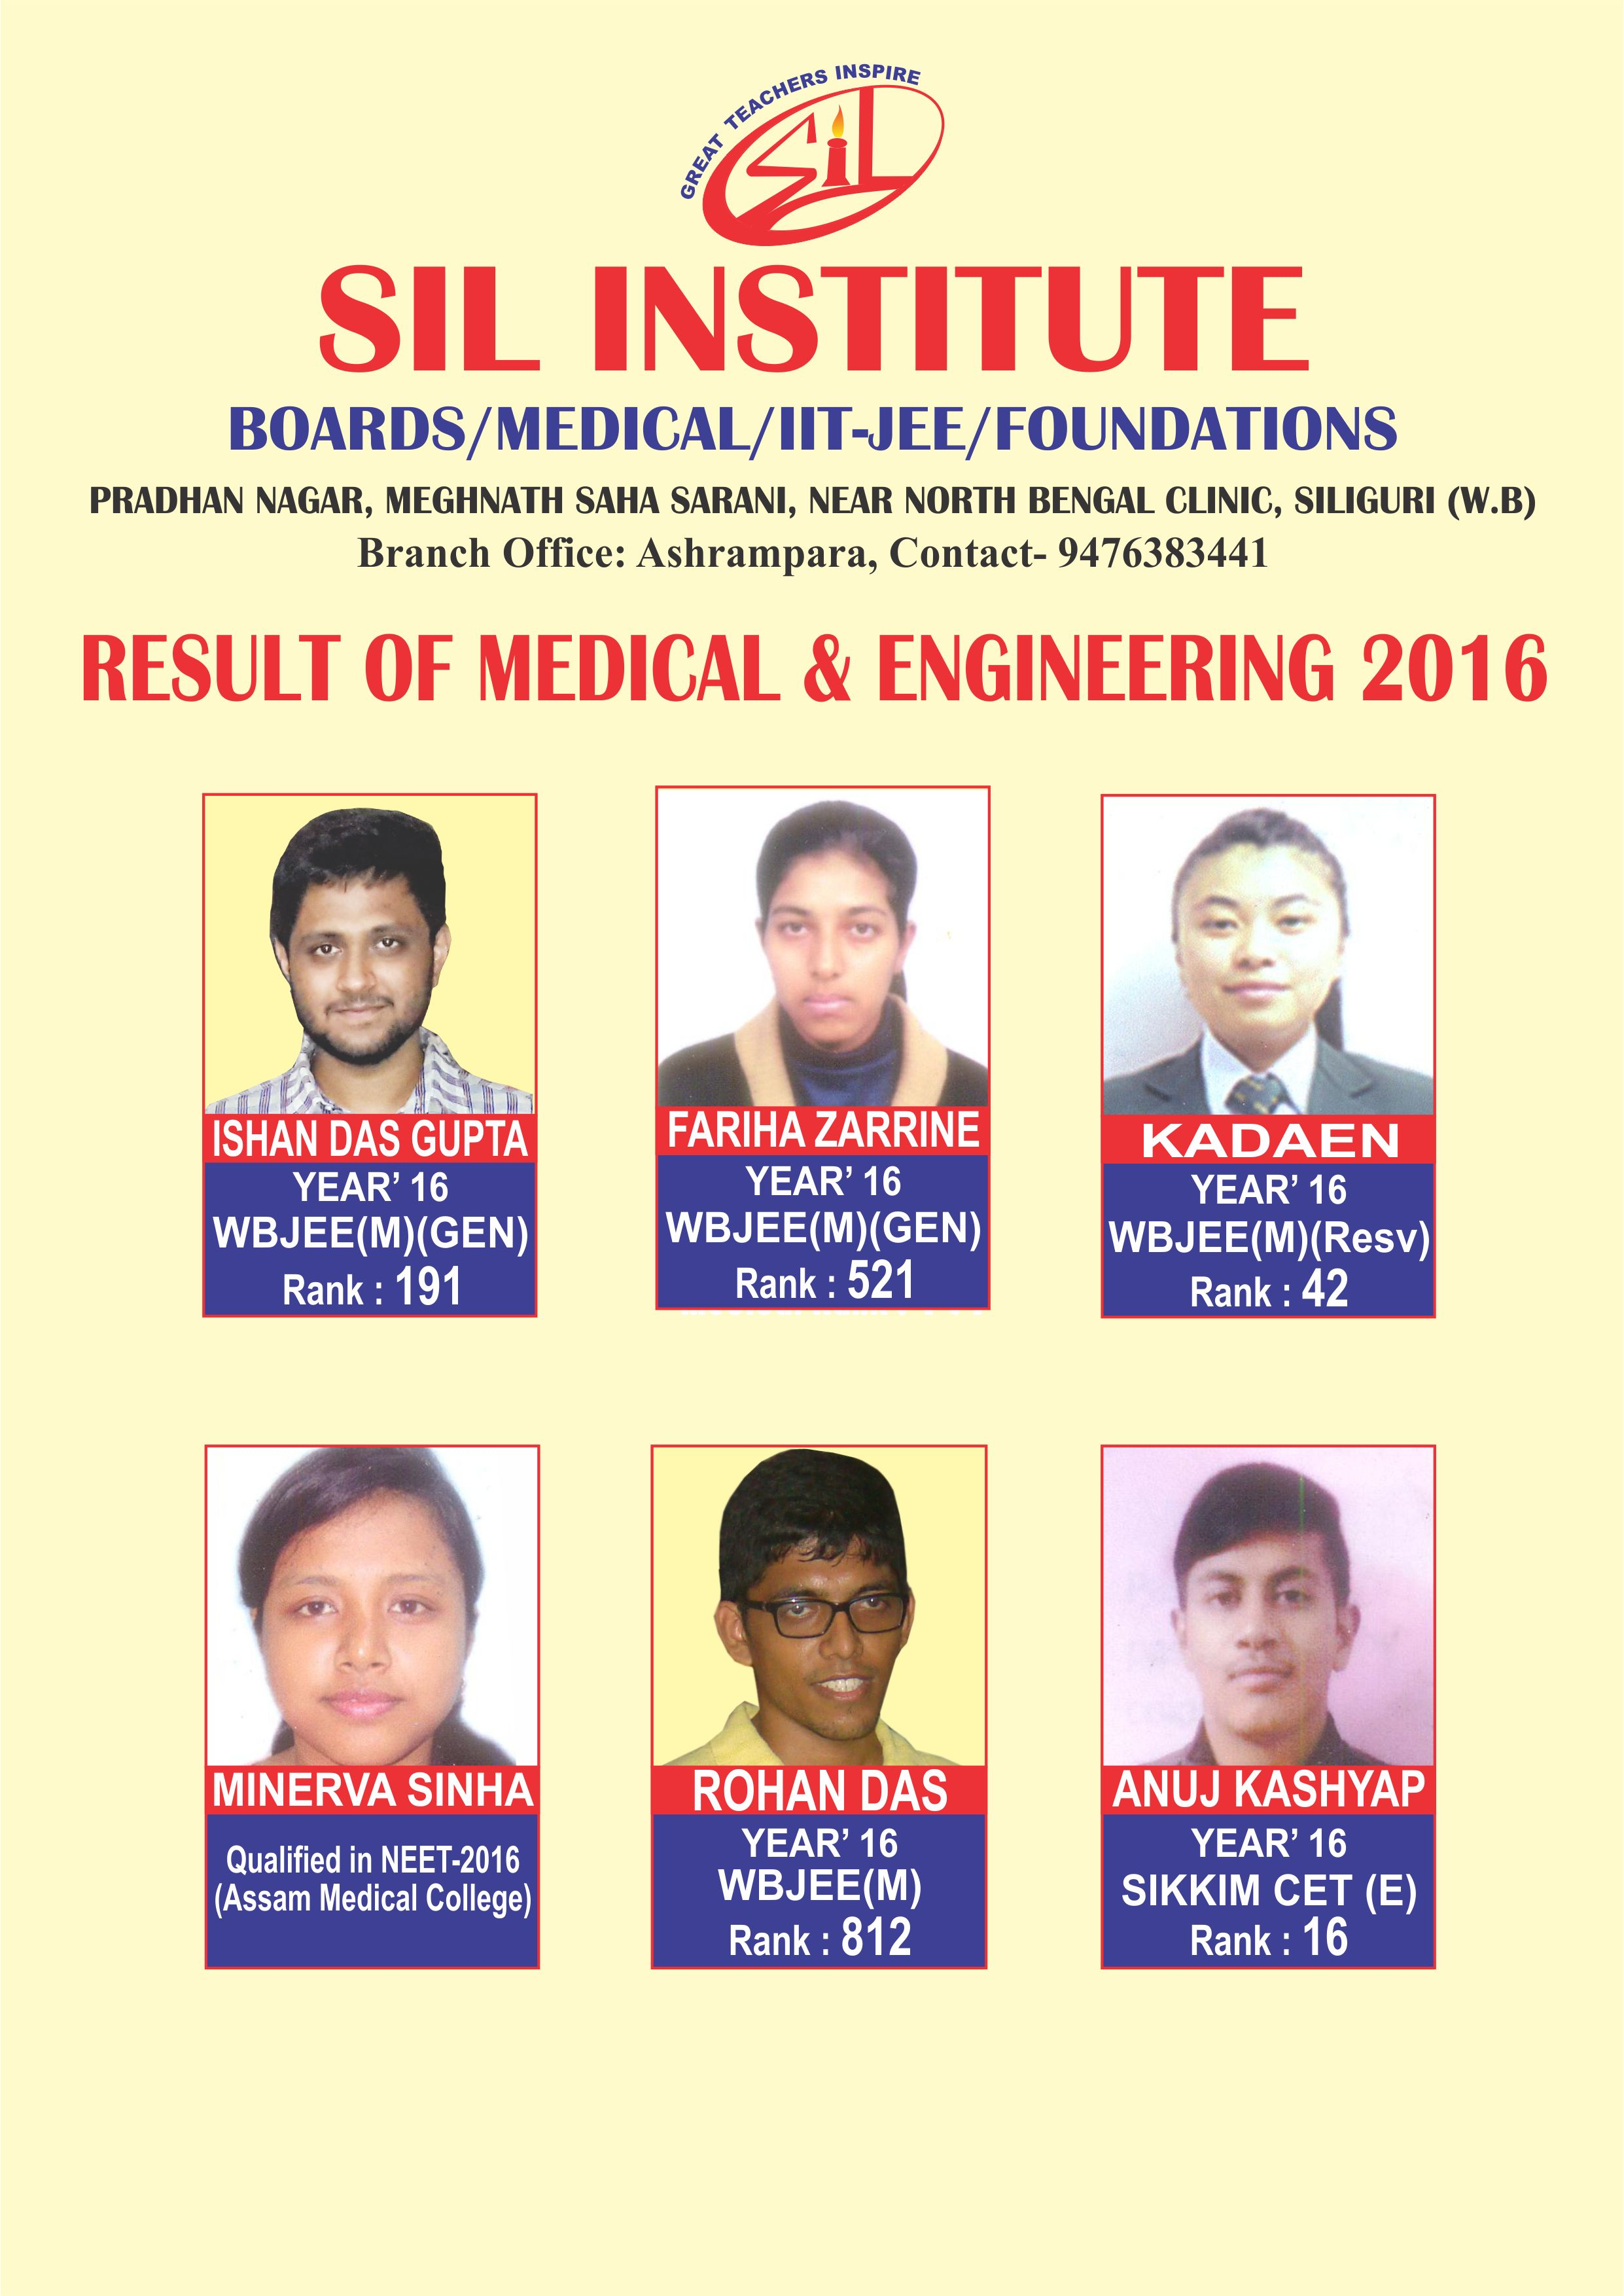 Result of Medical & Engineering 2016